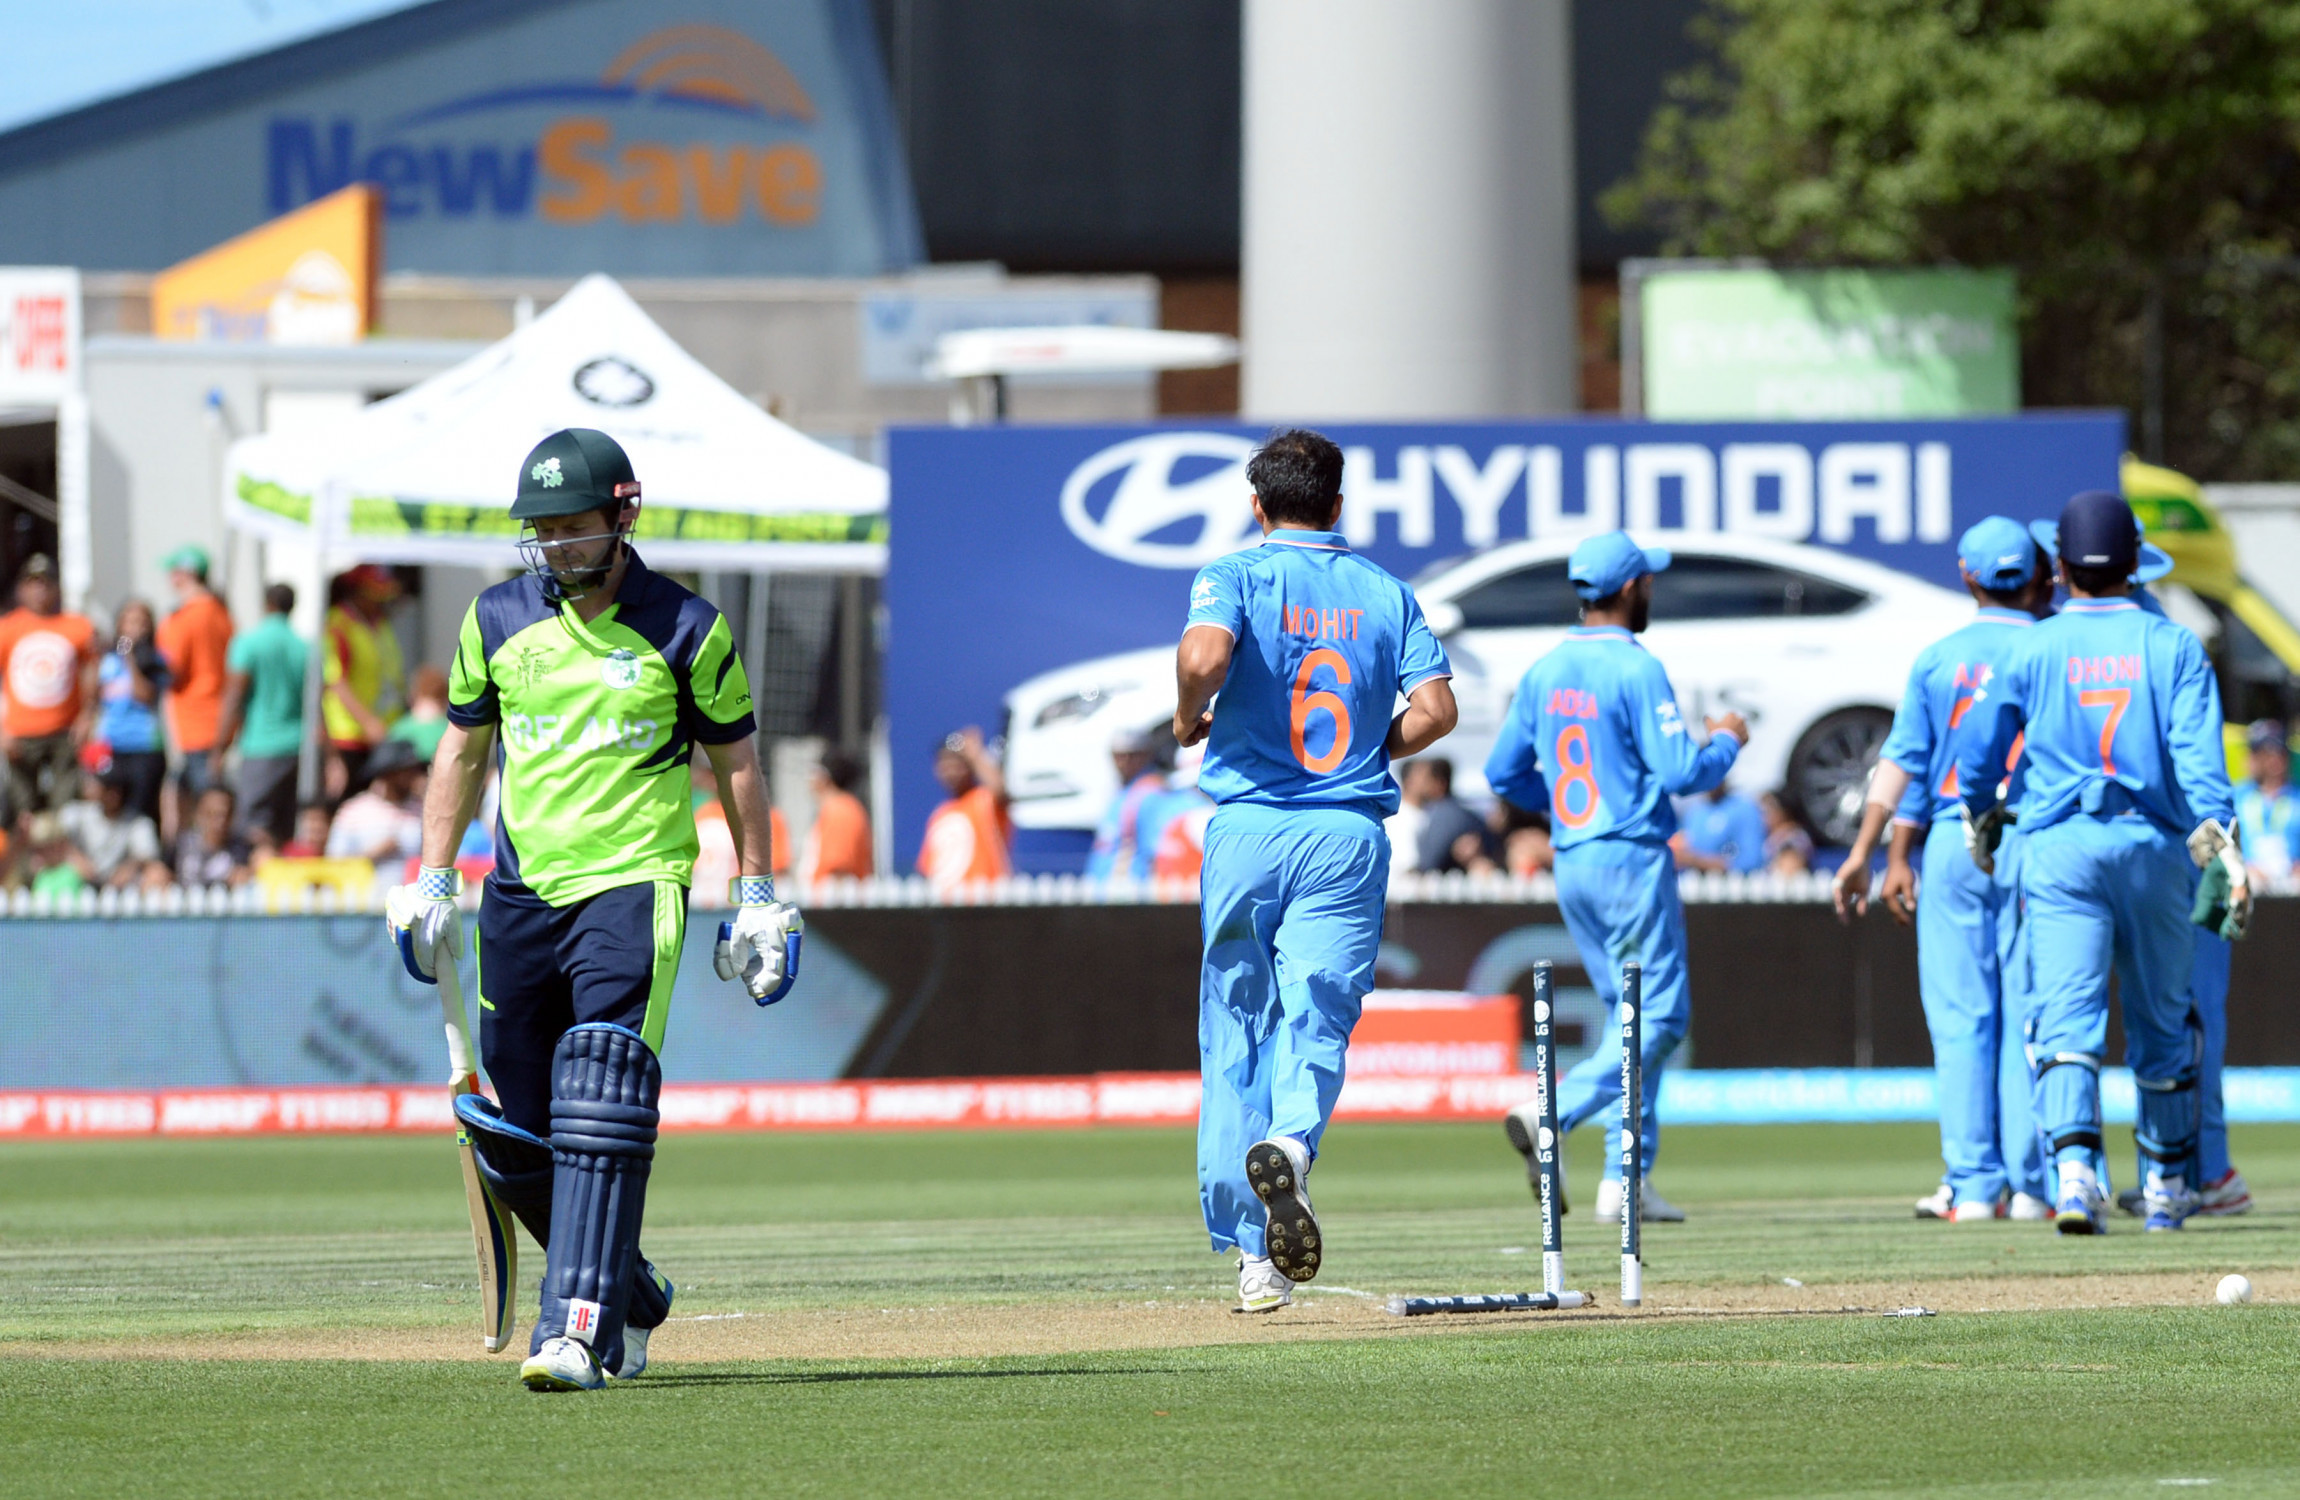 Ireland to host two T20 encounters with India this summer